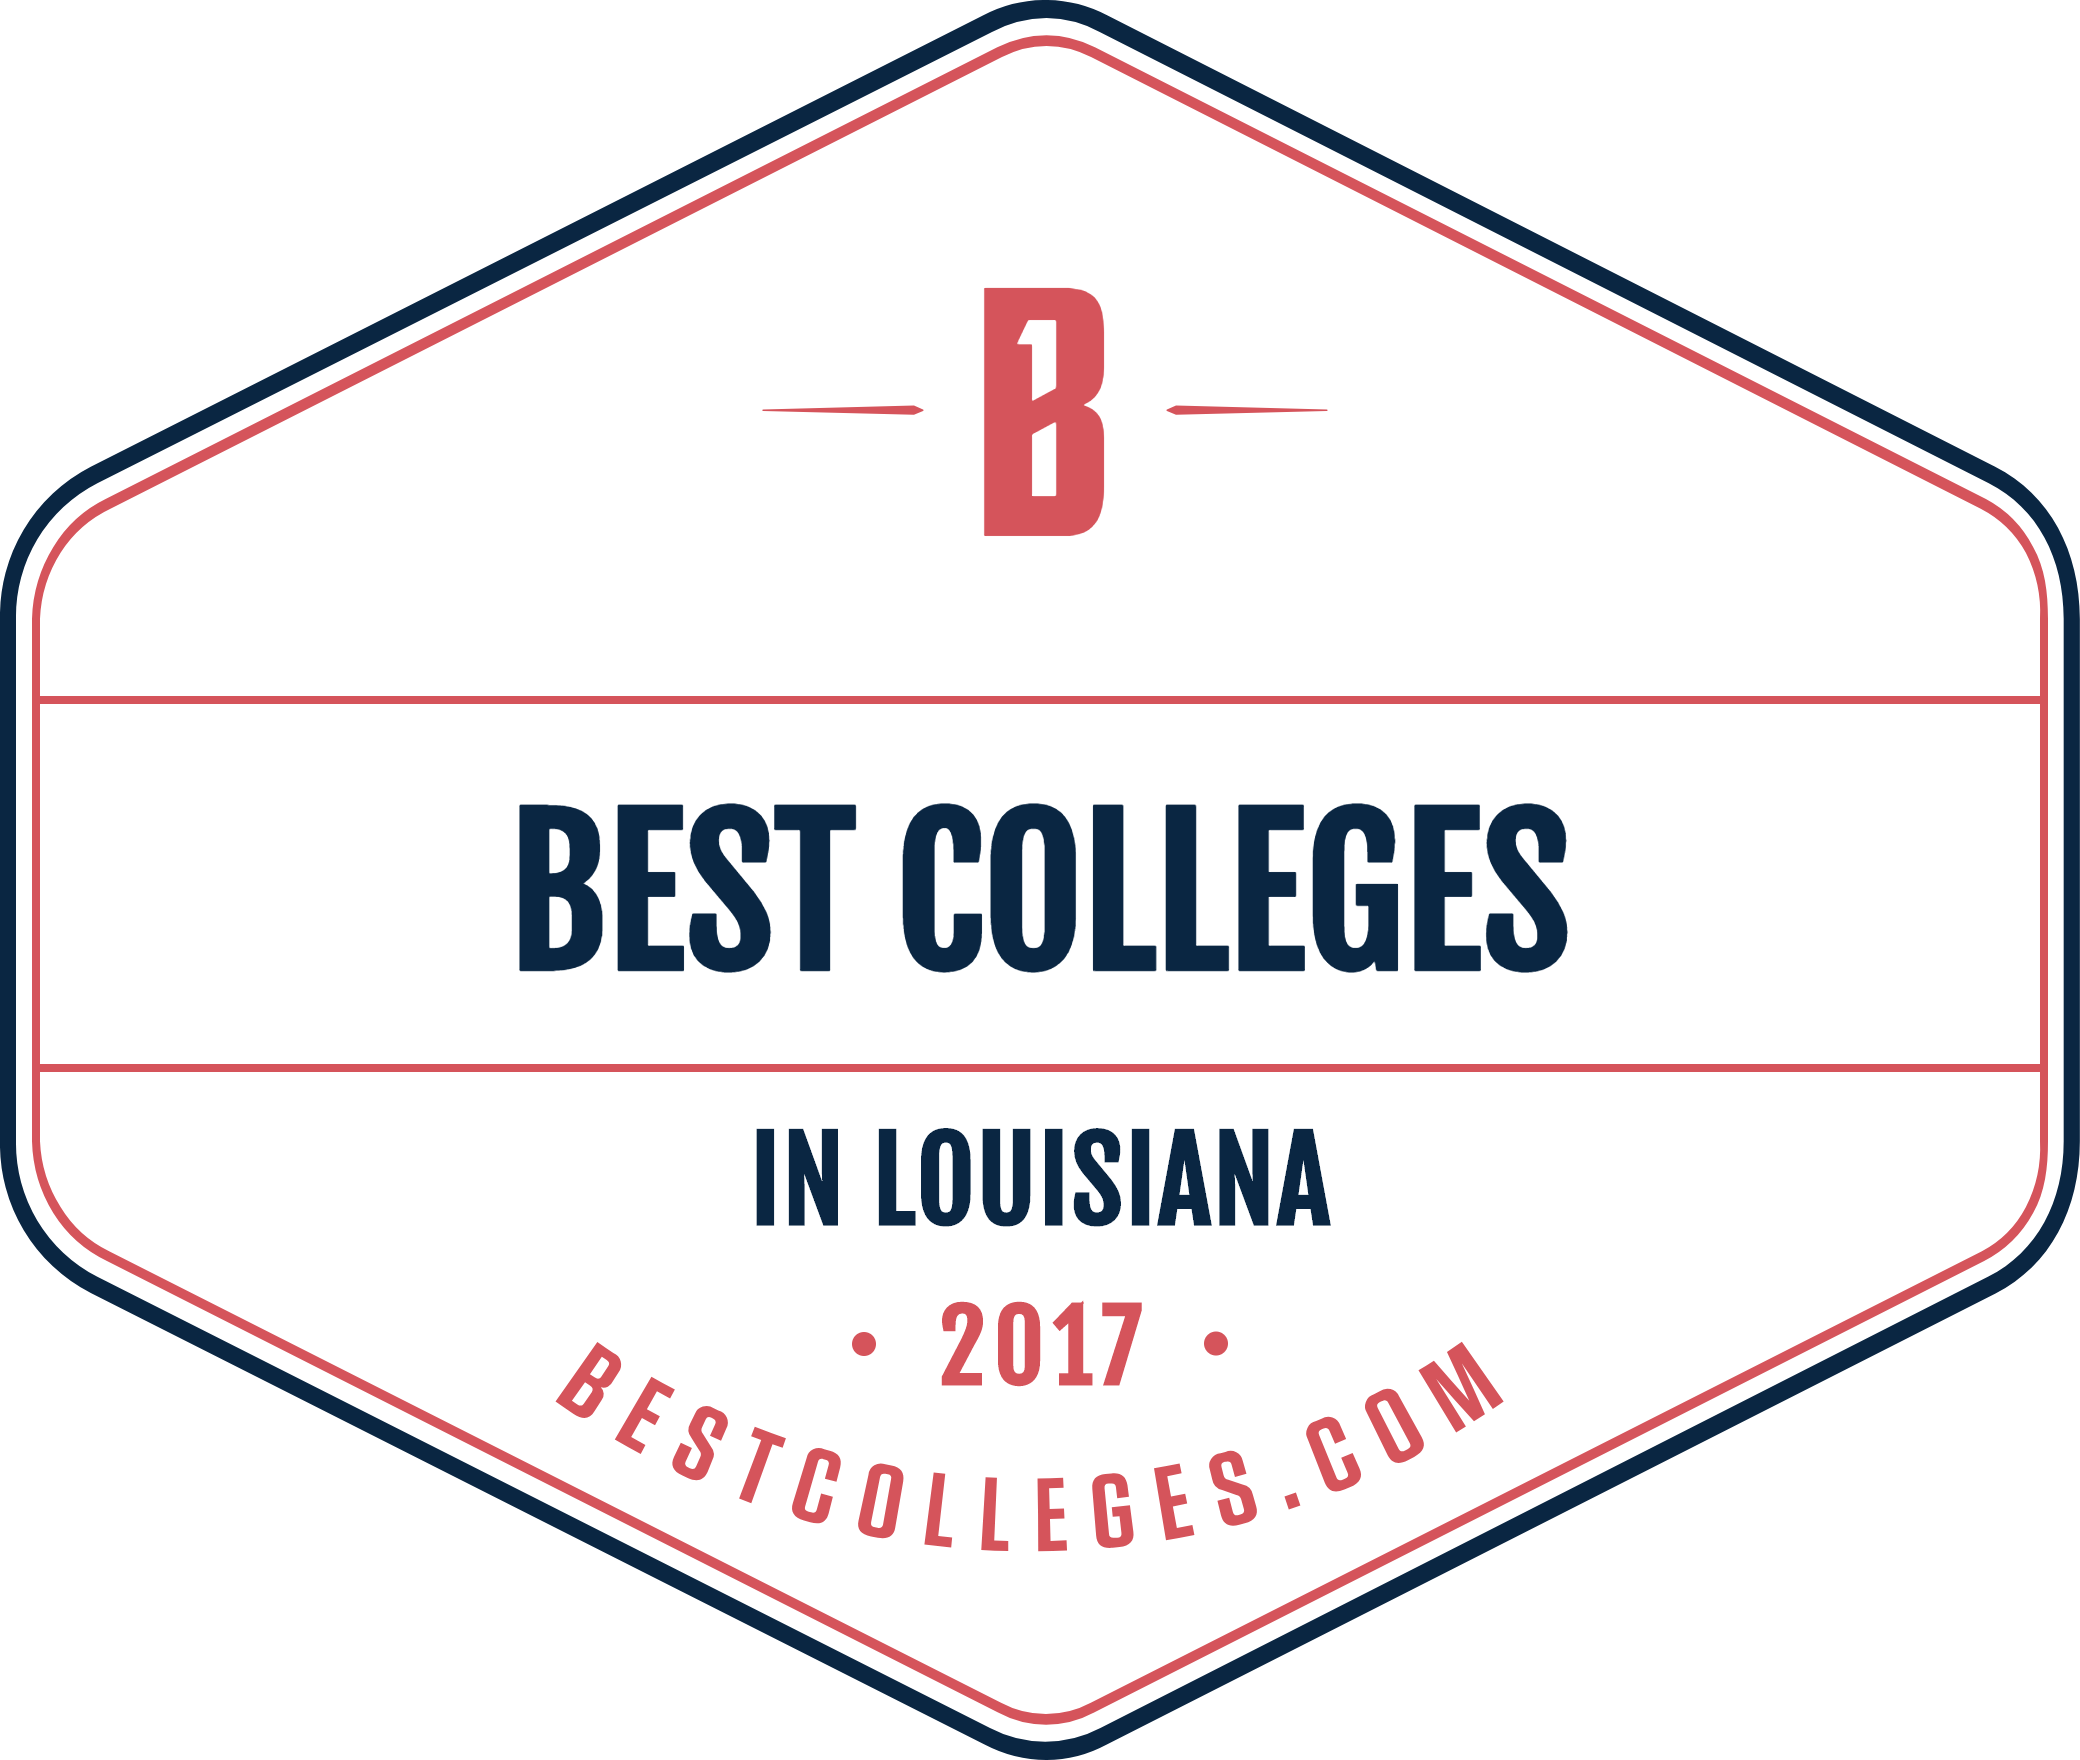 BestBolleges.com 2017 ranking seal